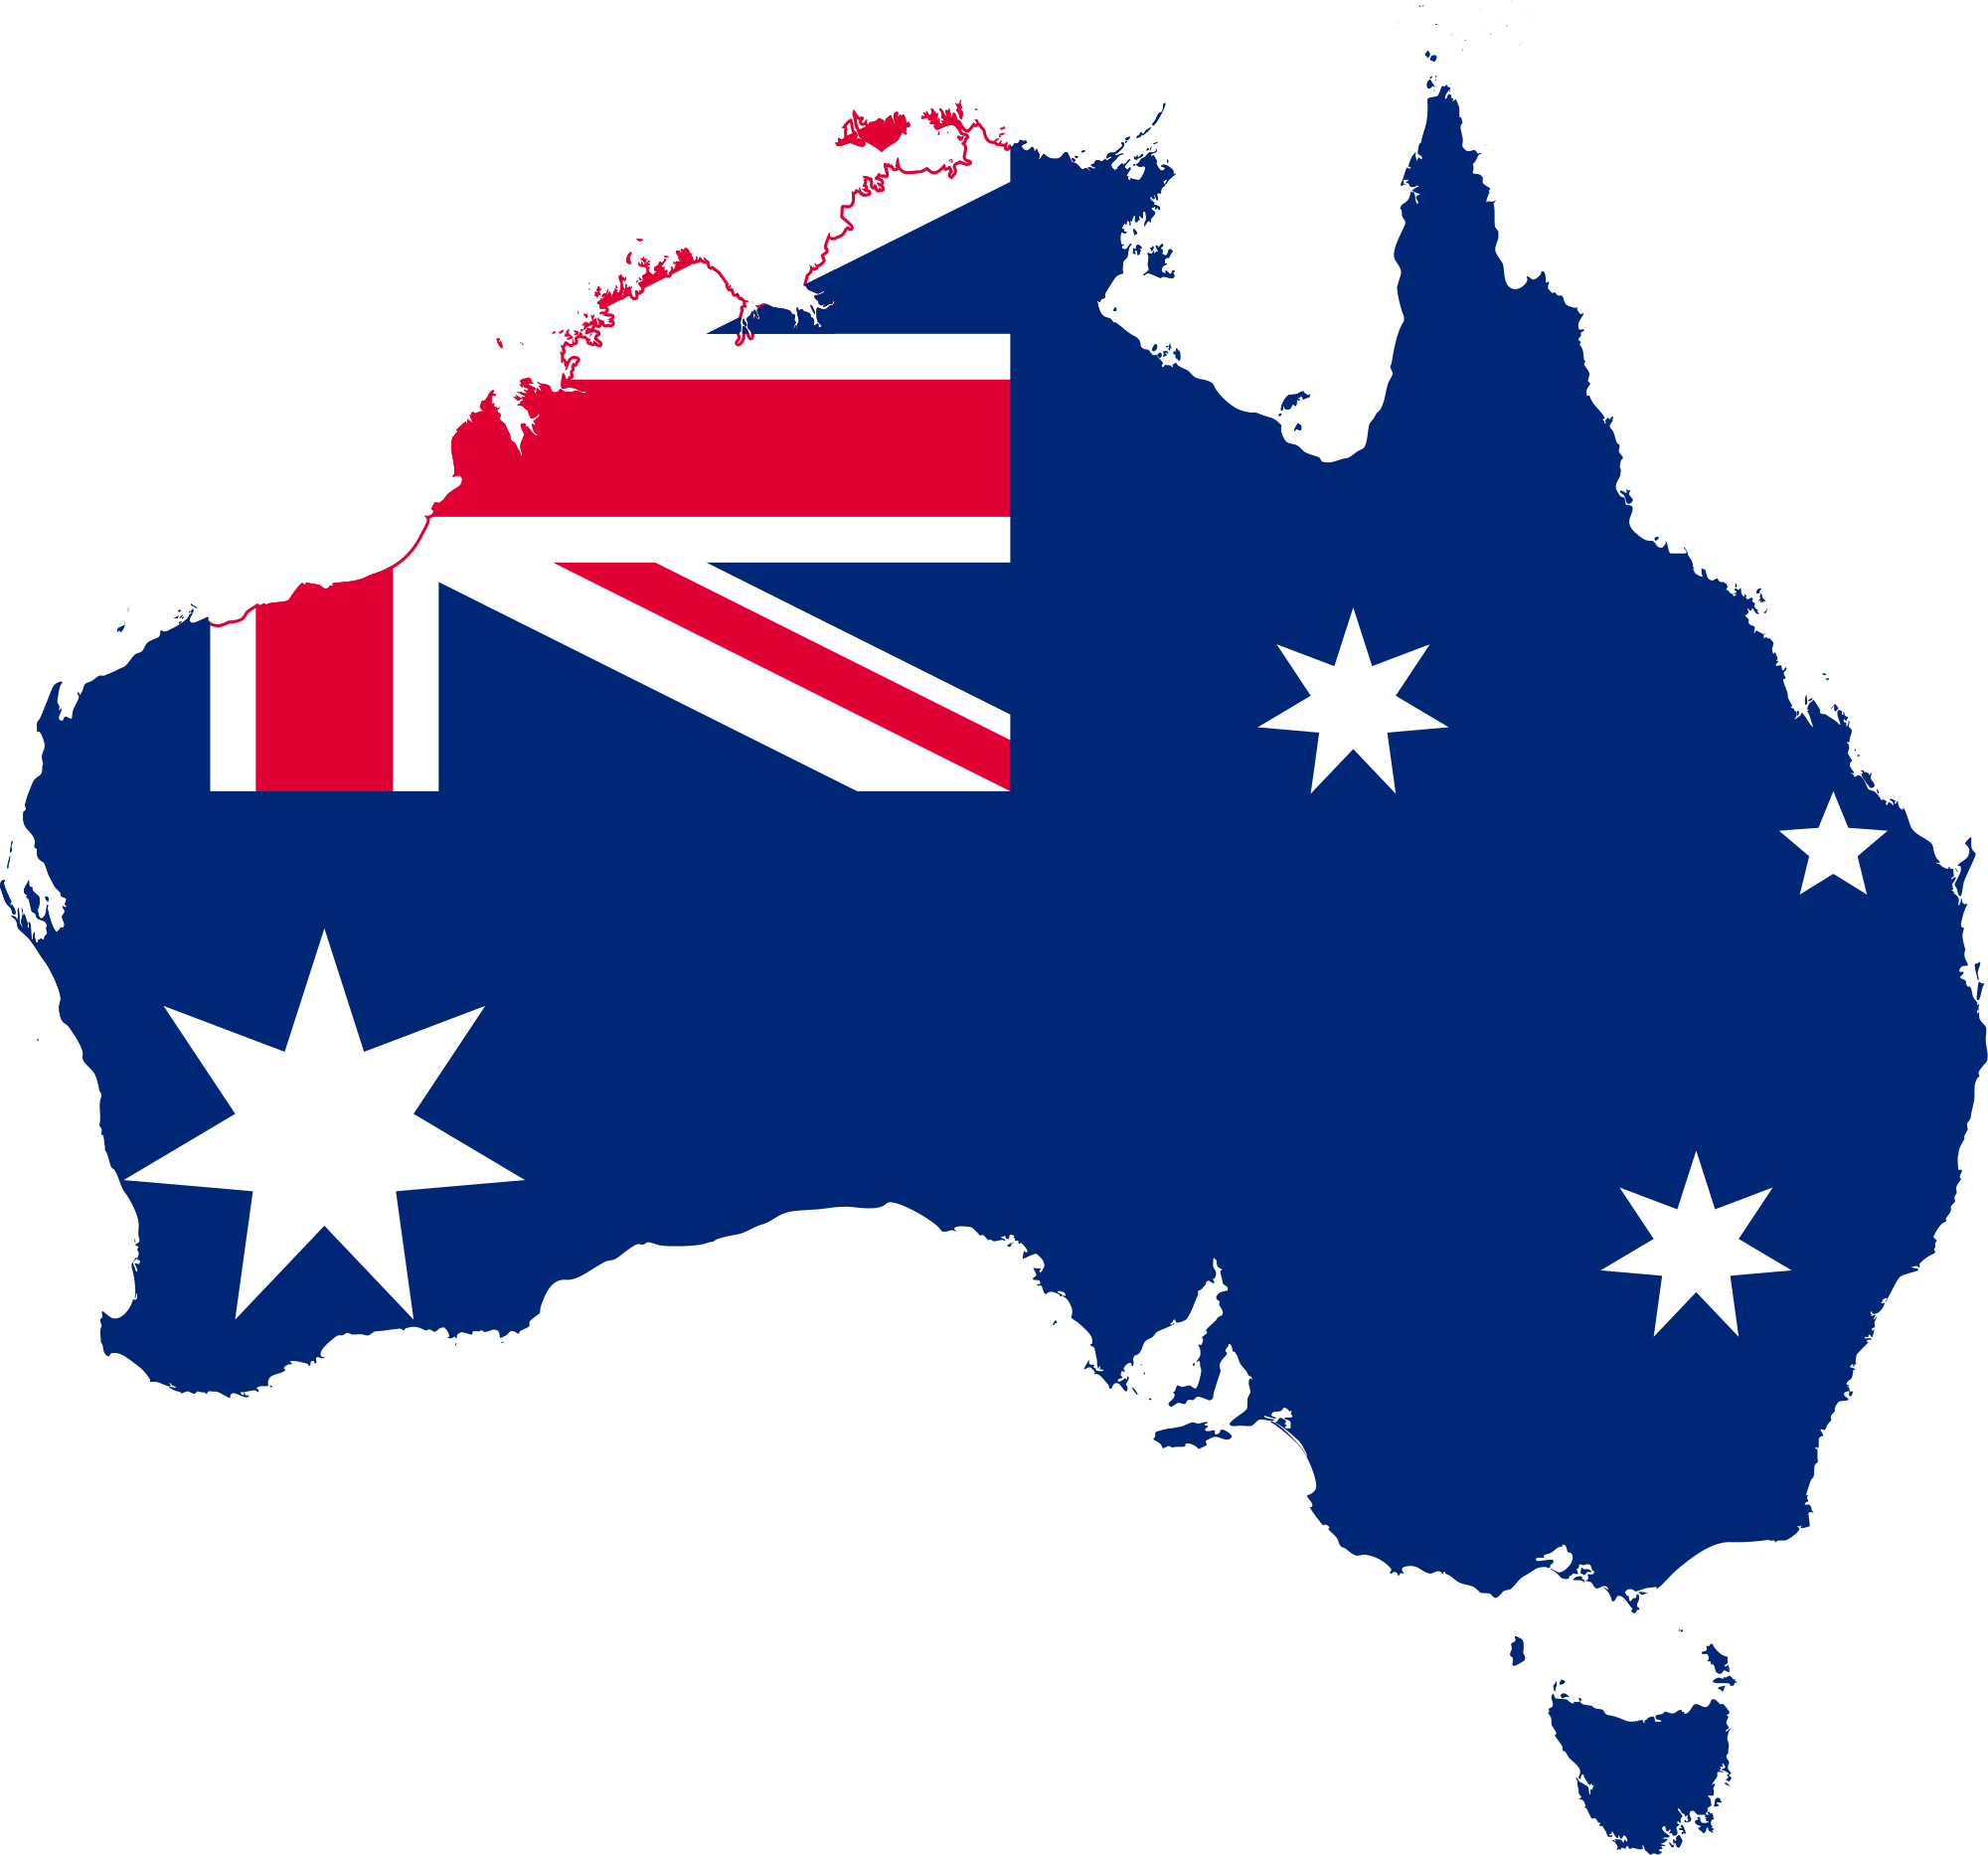 Australia Flag PNG Transparent Images Group with 55+ items.